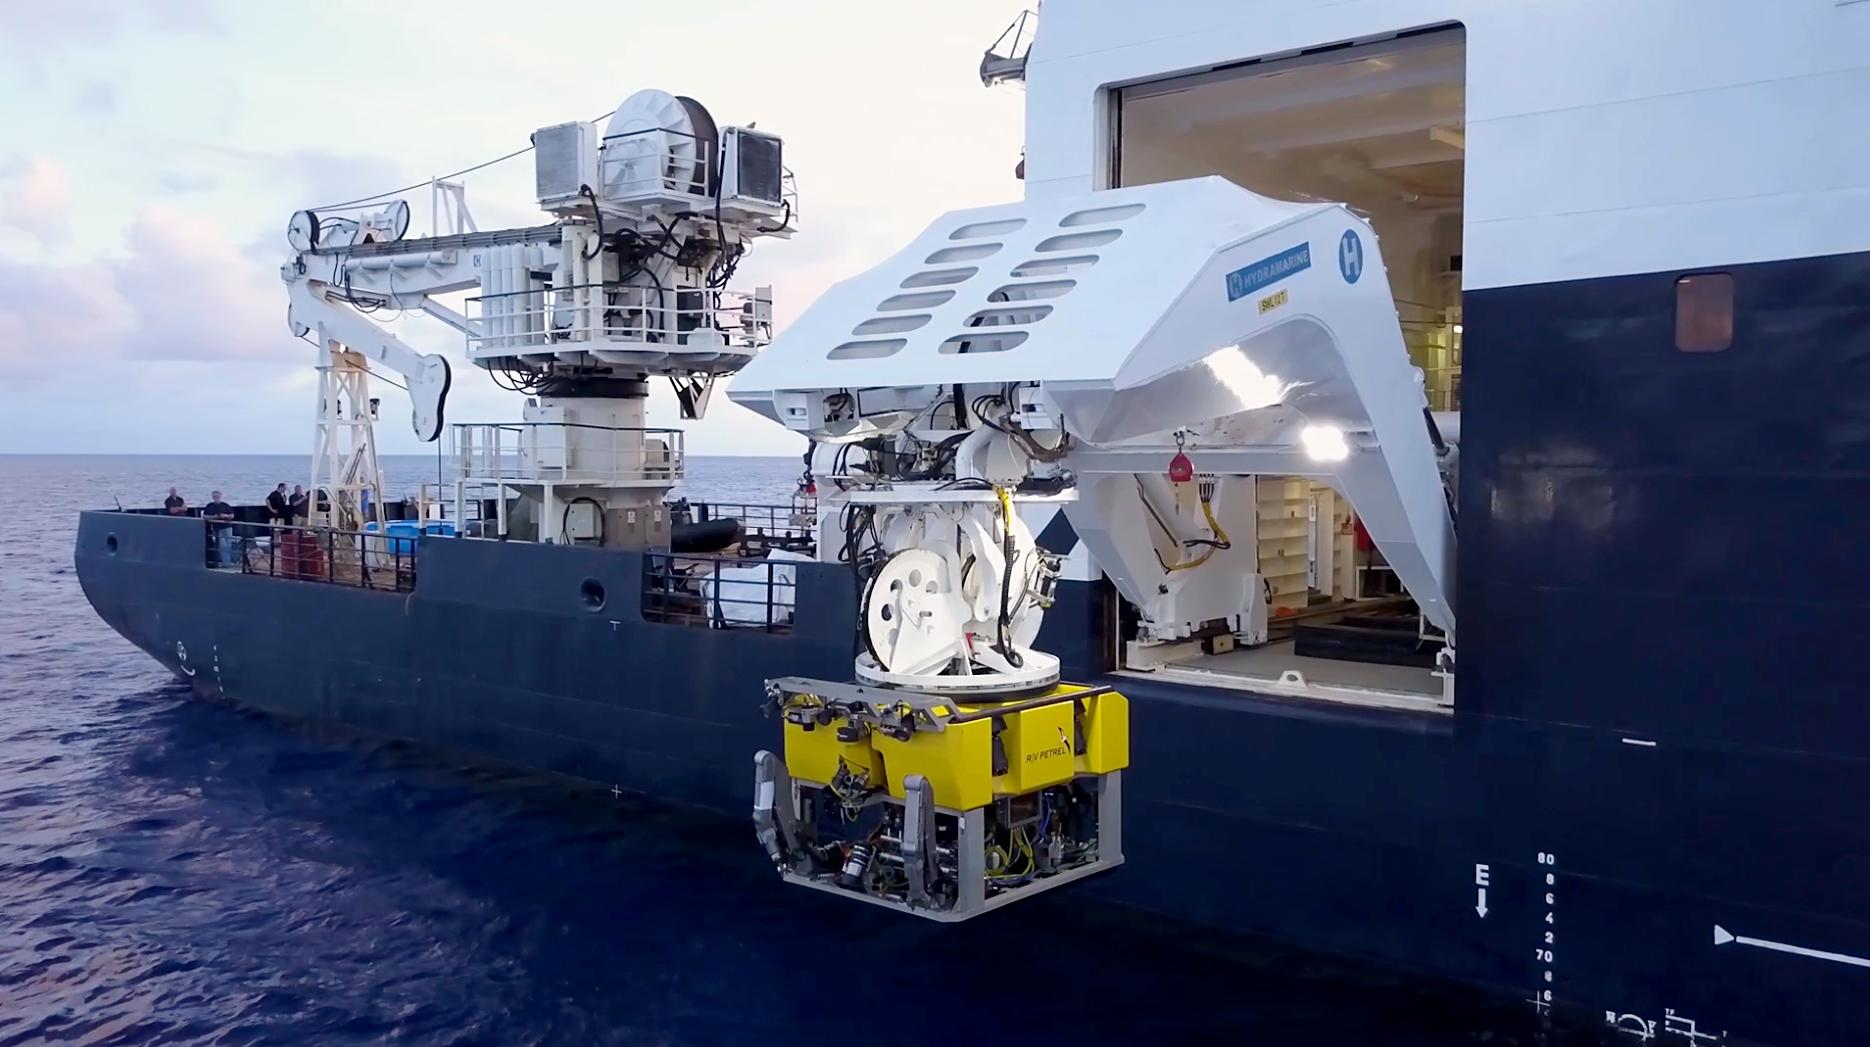 The BXL79 ROV is deployed from the R/V Petrel. The remotely operated underwater vehicle can conduct missions up to 7,000 meters deep. Photo courtesy of Paul G. Allen